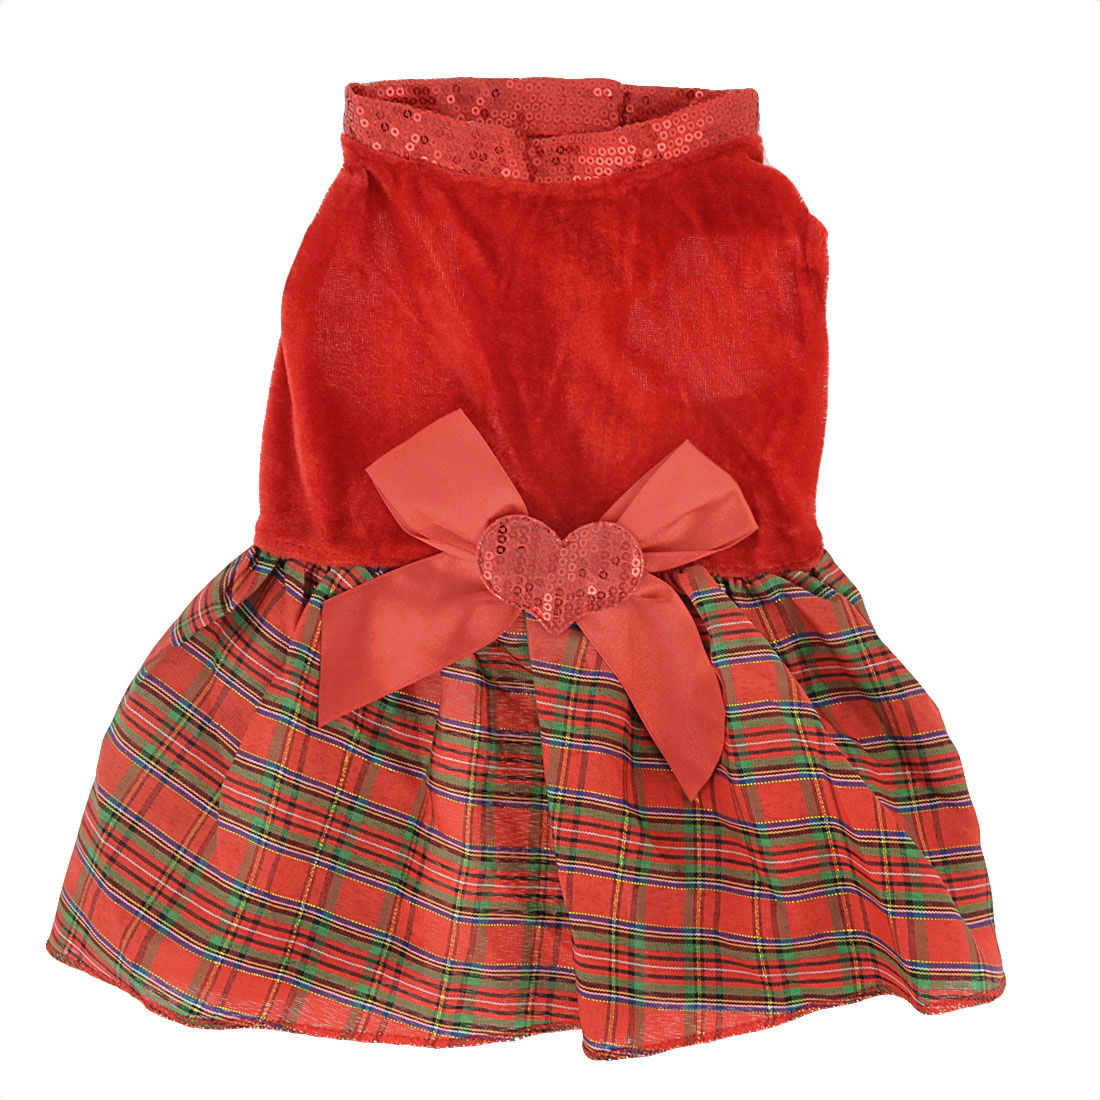 Unique Bargains Bowknot Heart Accent Plaid Pattern Pet Dog Puppy Clothes Dress Skirt Red M